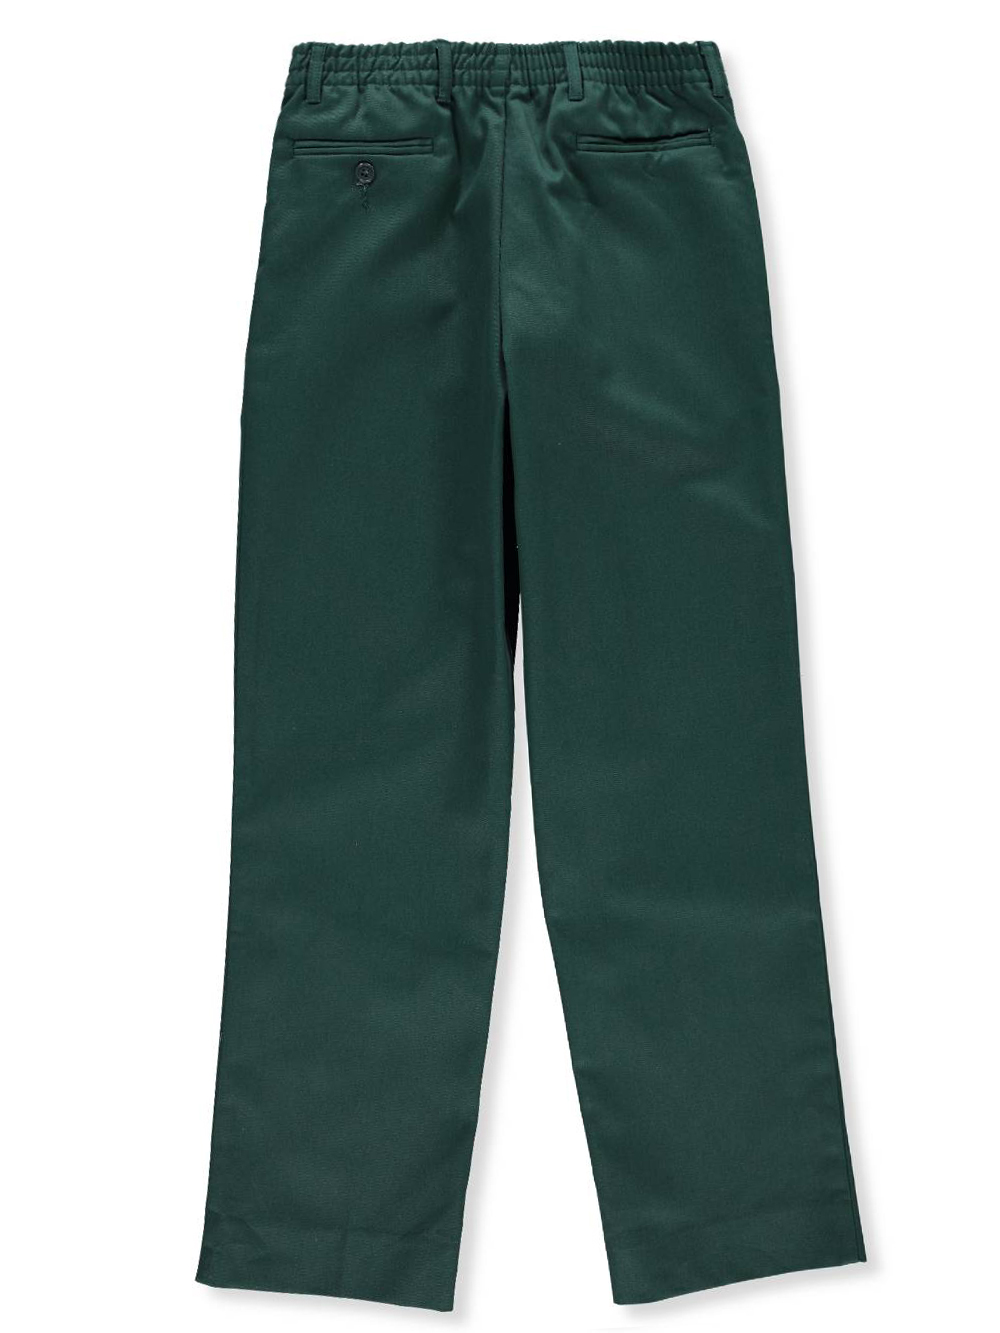 Try a pair of boys' cargo pants for school and switch into flat front khakis for a family portrait. Look for comfortable styles that let him stay looking sharp with a variety of slacks, cargos, joggers and jeans. Boys' cargo pants and jeans are great choices for casual, everyday style.